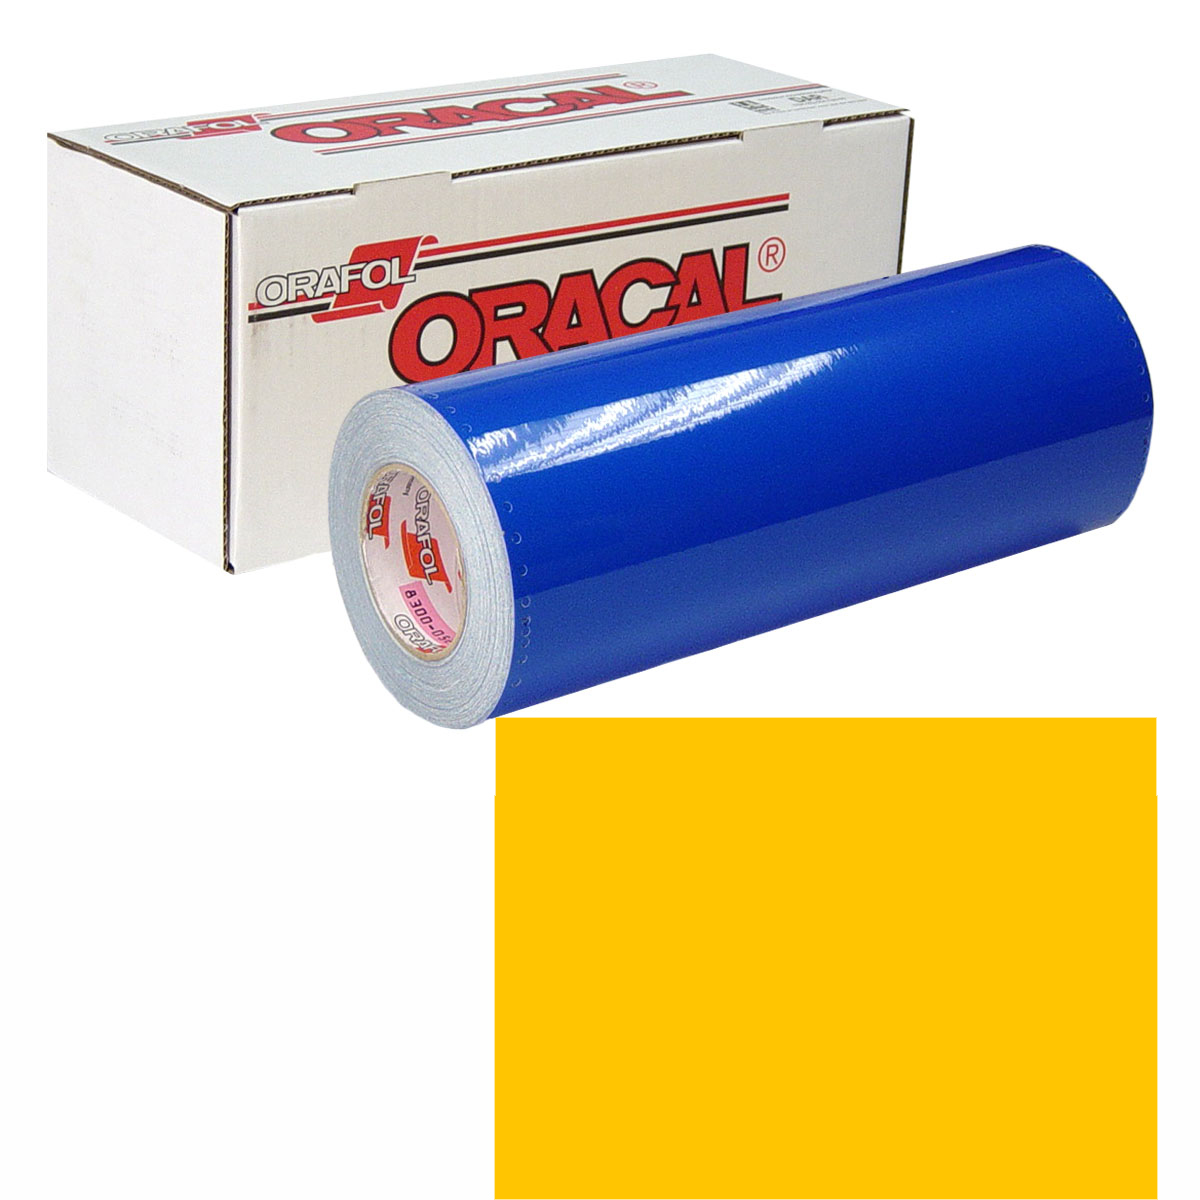 ORACAL 631 15In X 10Yd 021 Yellow